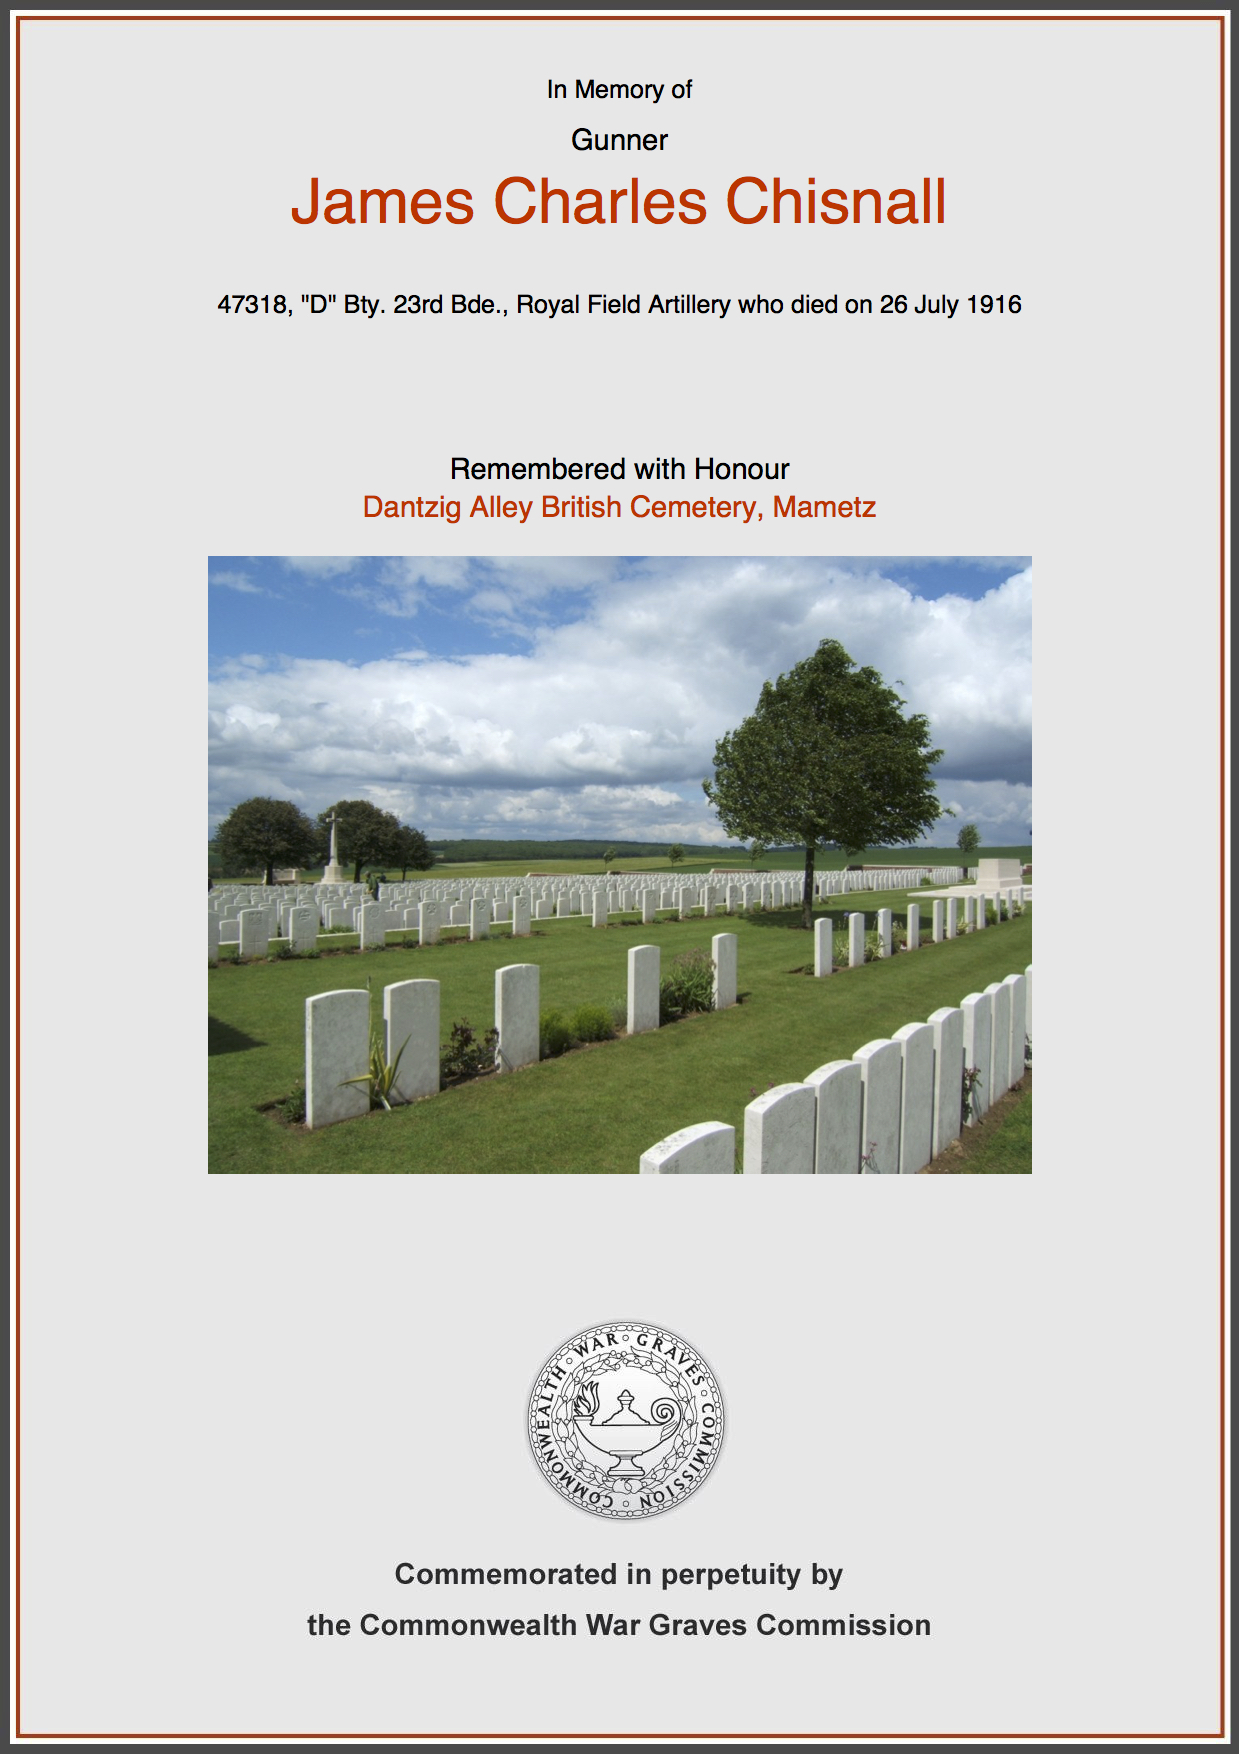 James Charles Chisnall's CWGC Commemorative Certificate